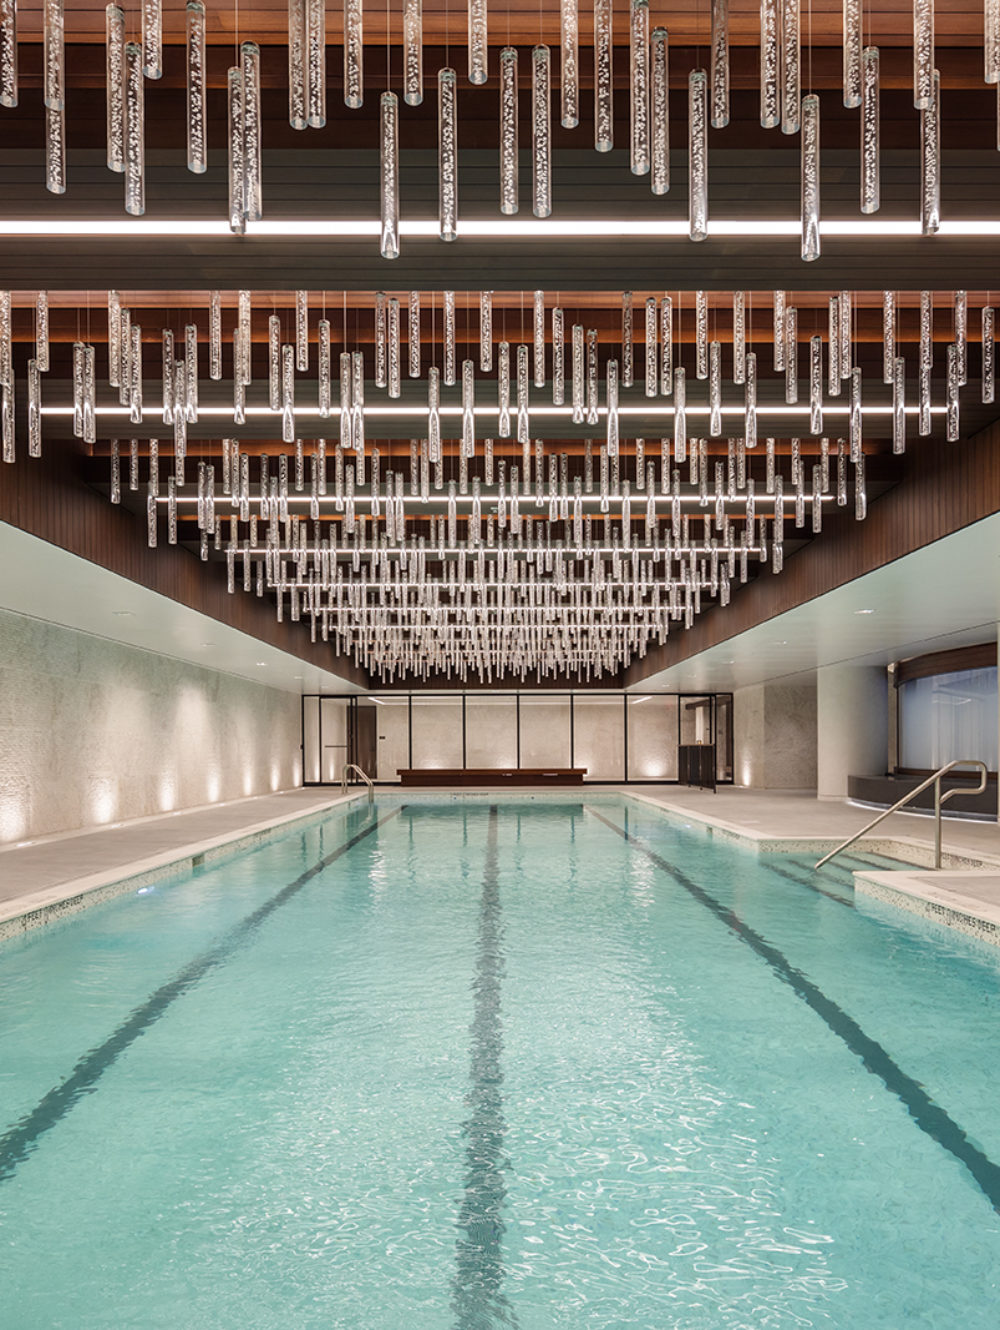 Indoor pool at One Manhattan Square luxury condominiums in NYC. Four lane lap pool with sauna and sitting area.